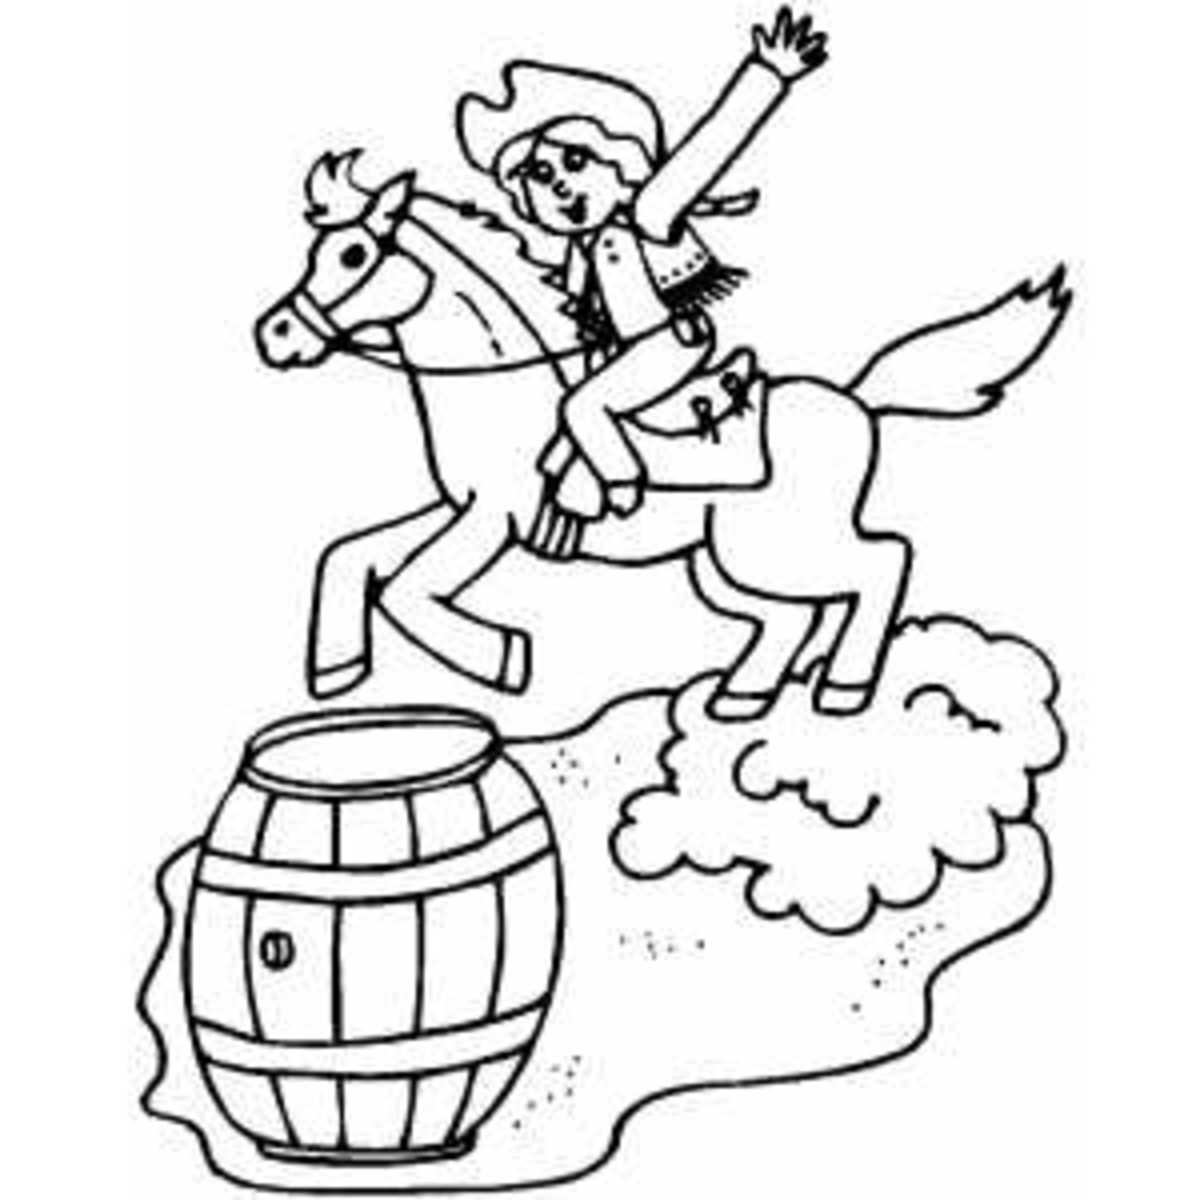 western coloring pages for kids - photo#22